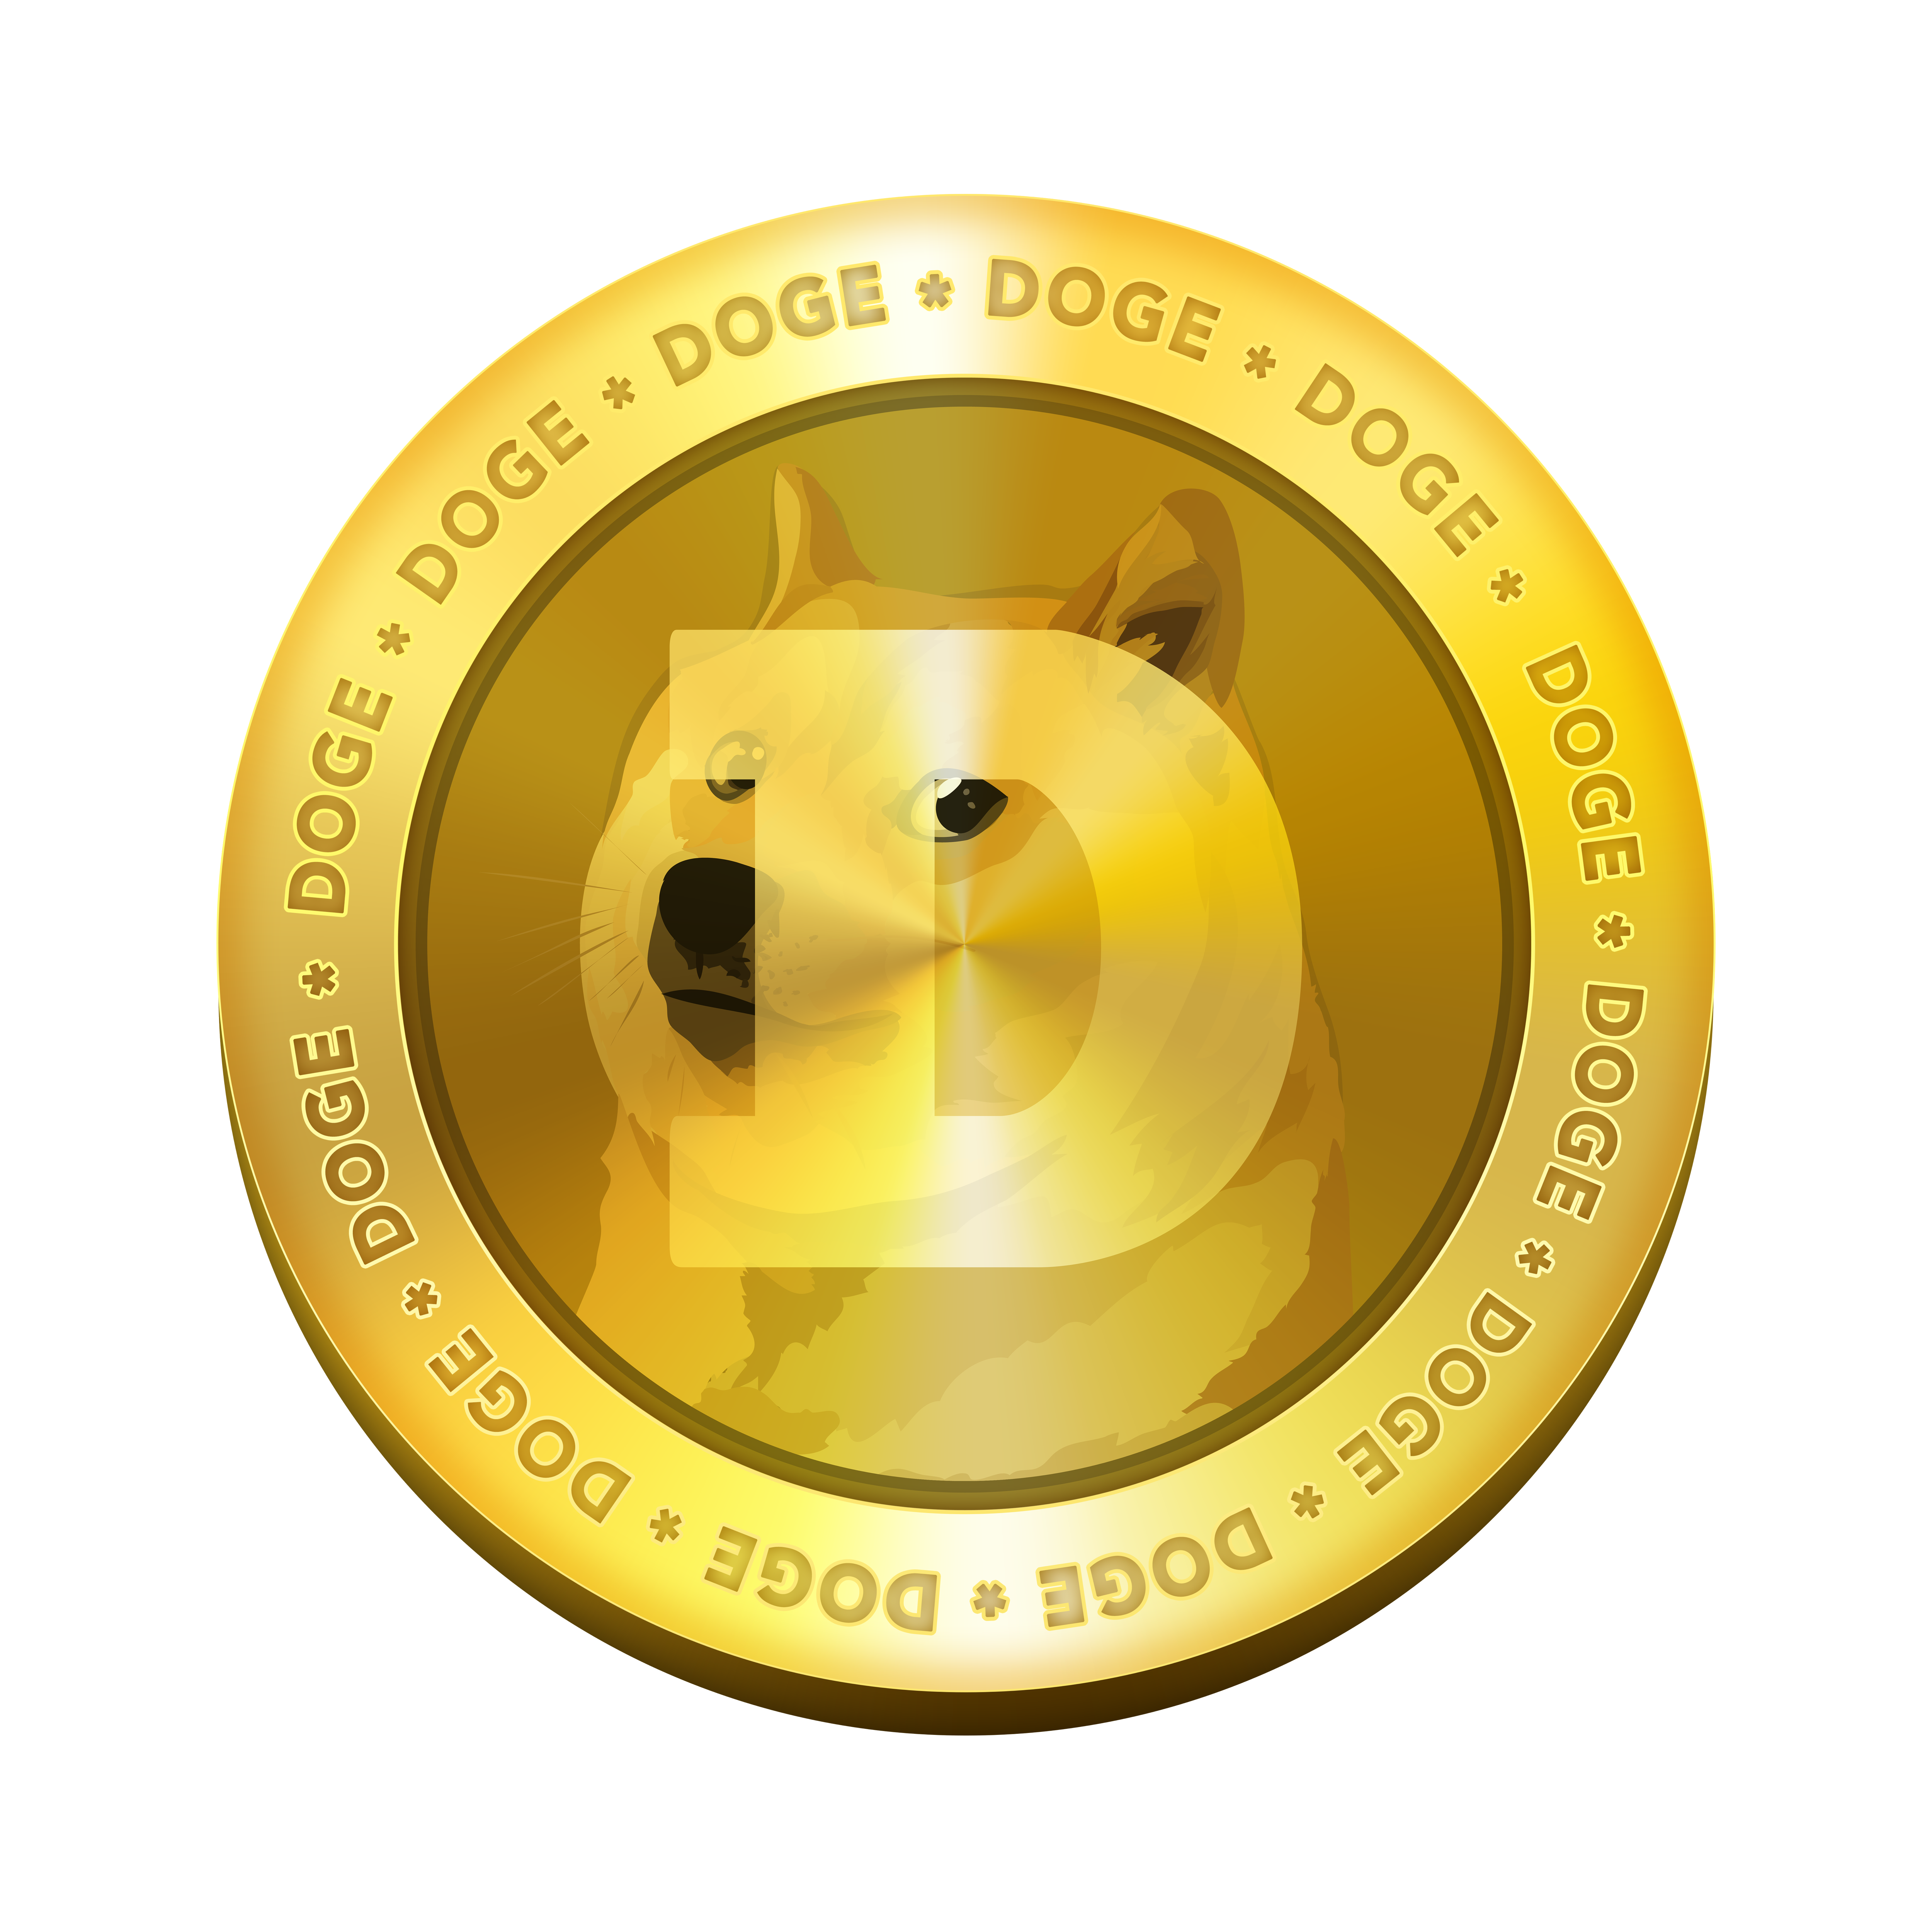 Litecoin Gold Blockchain Bitcoin Cryptocurrency Dogecoin Lakshmi PNG Image